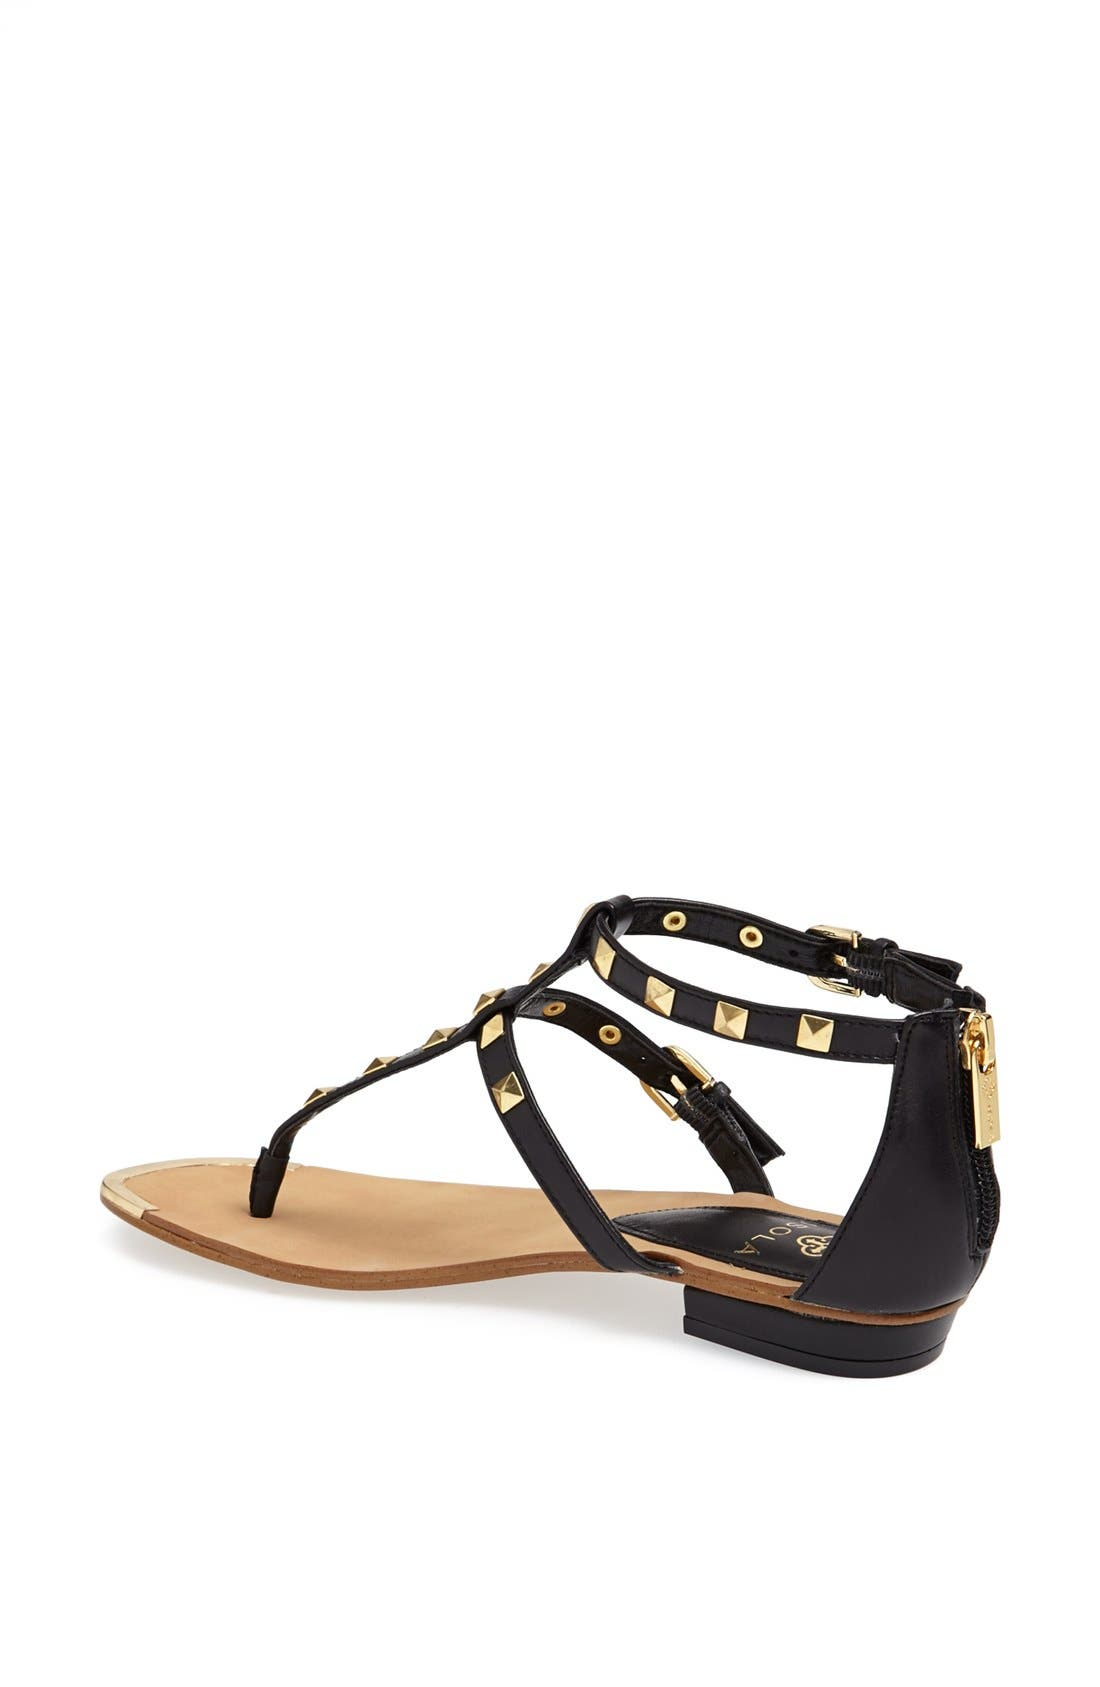 'Adie' Studded Leather Thong Sandal,                             Alternate thumbnail 2, color,                             001